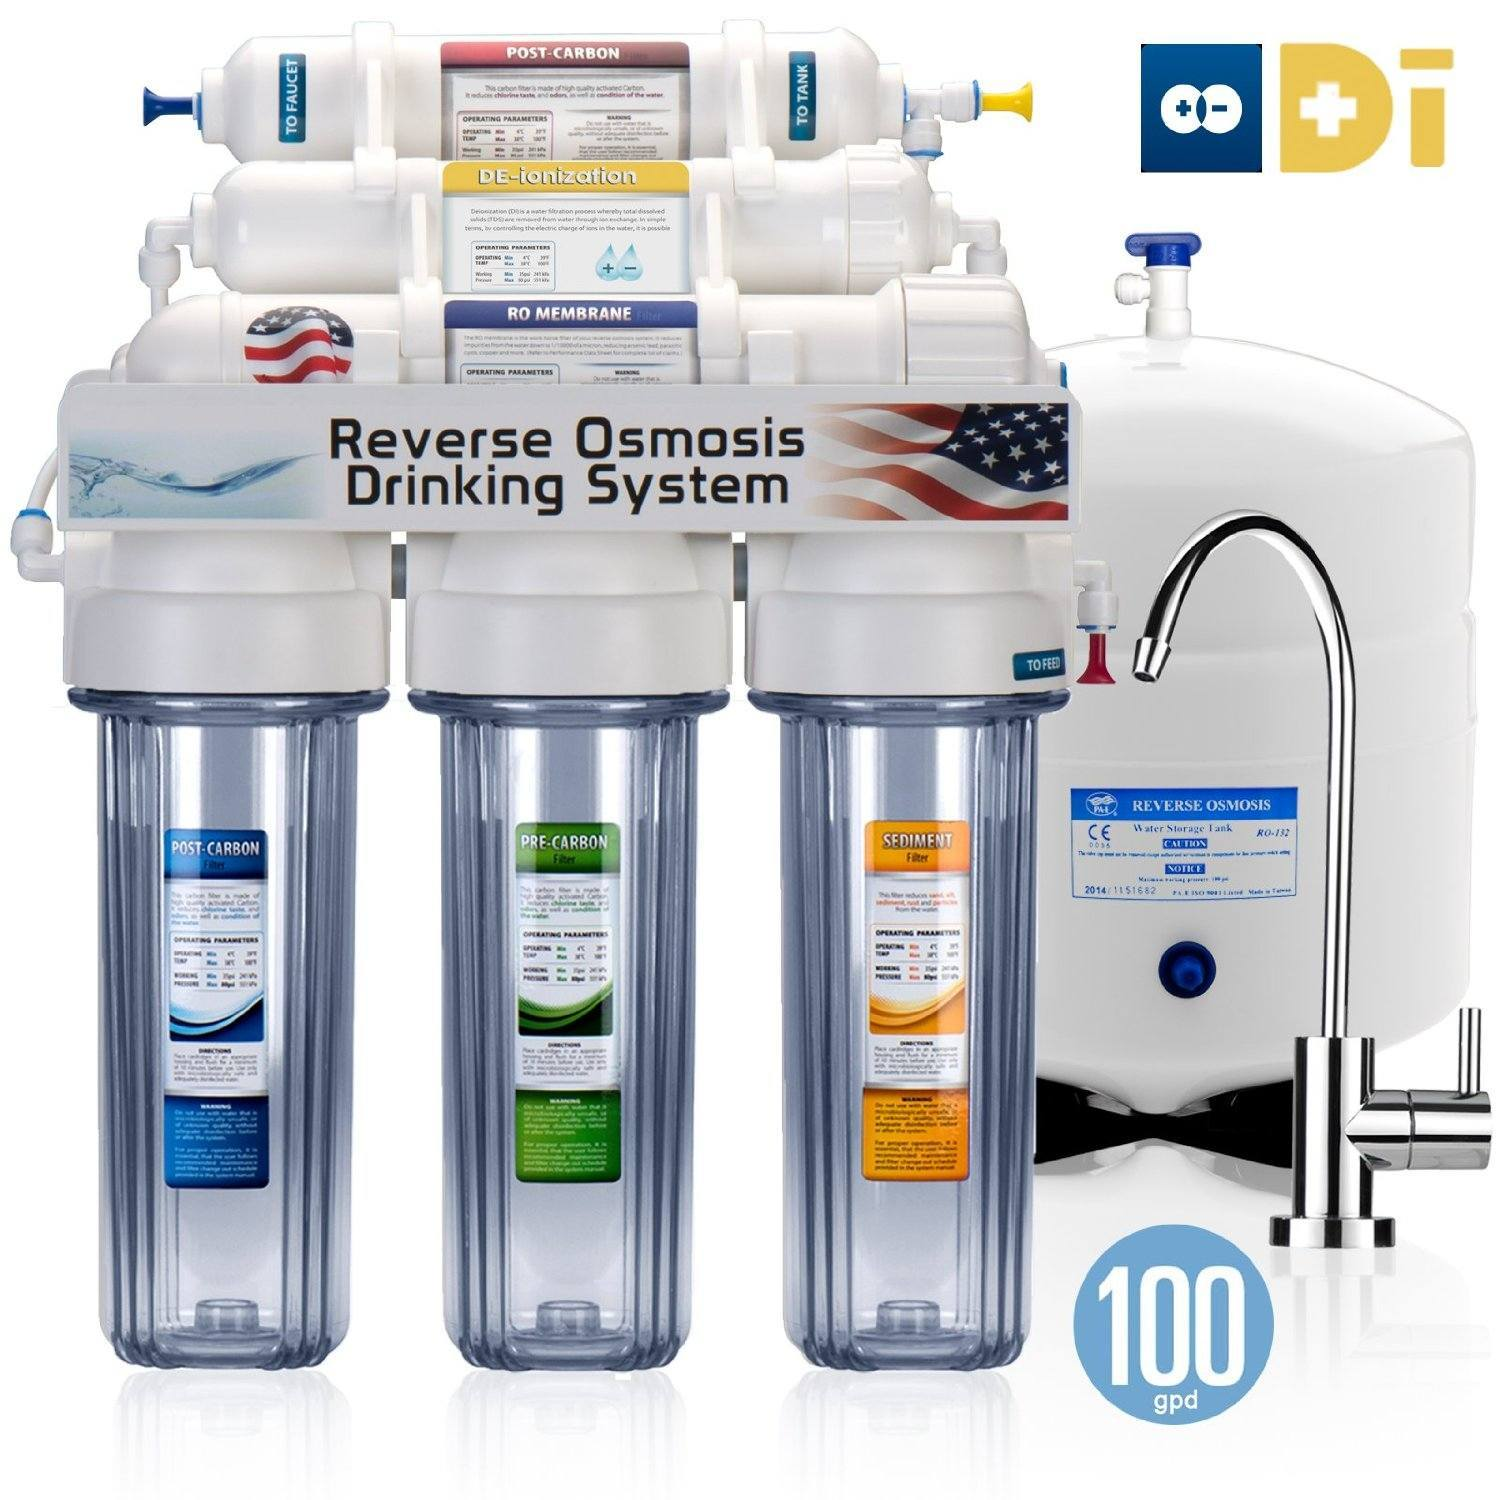 4.	Express Water 6 Stage UV Ultra-Violet Sterilizer Reverse Osmosis